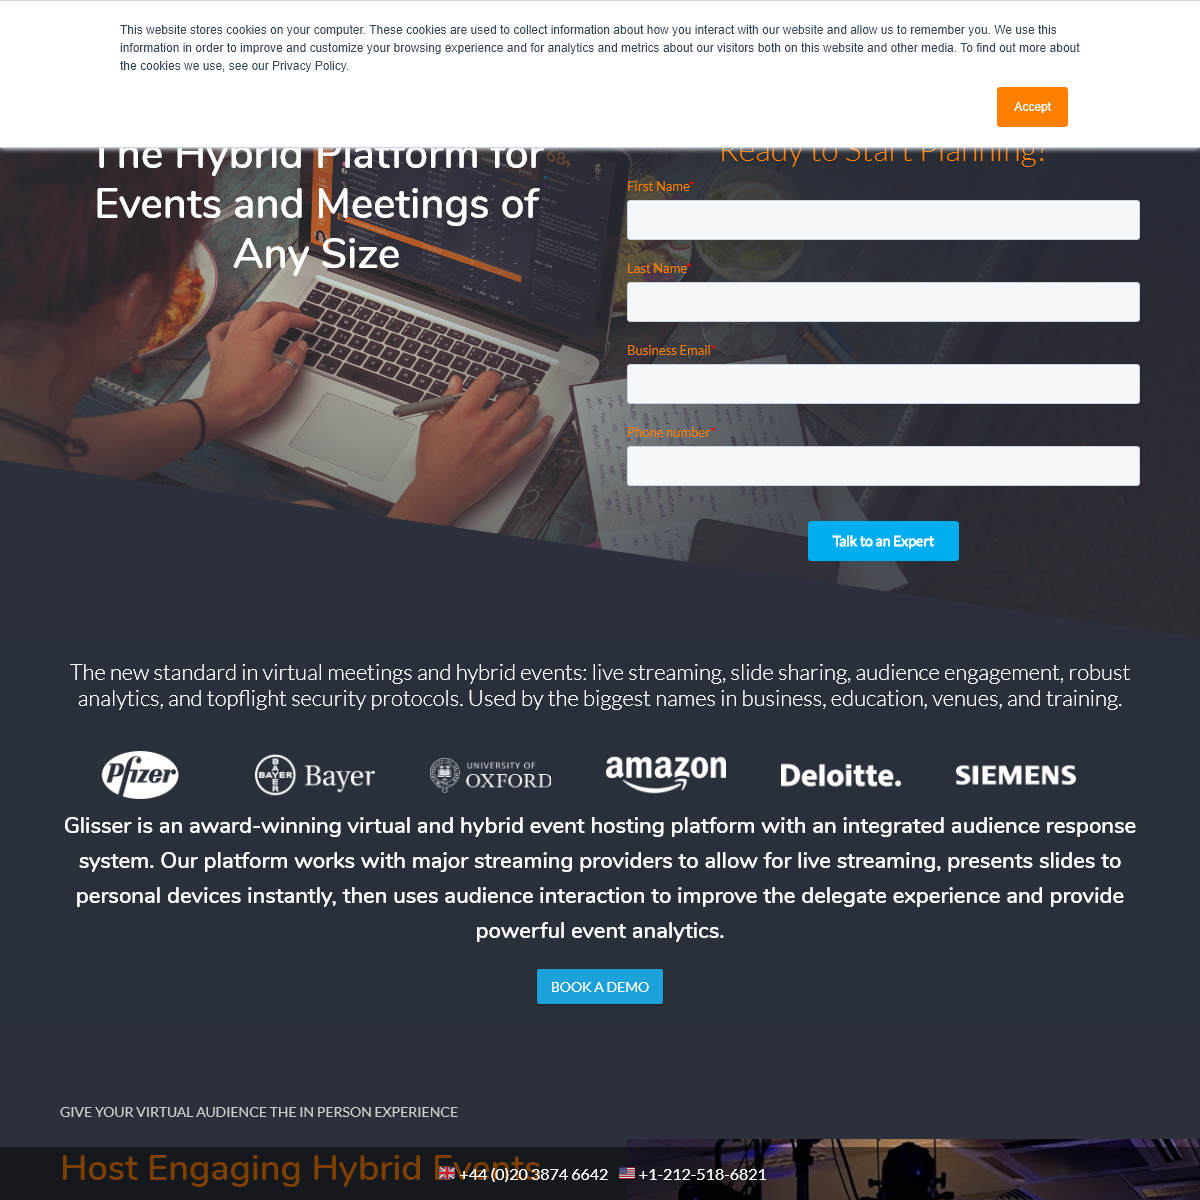 The Hybrid Events Platform for Meetings of Any Size - Glisser